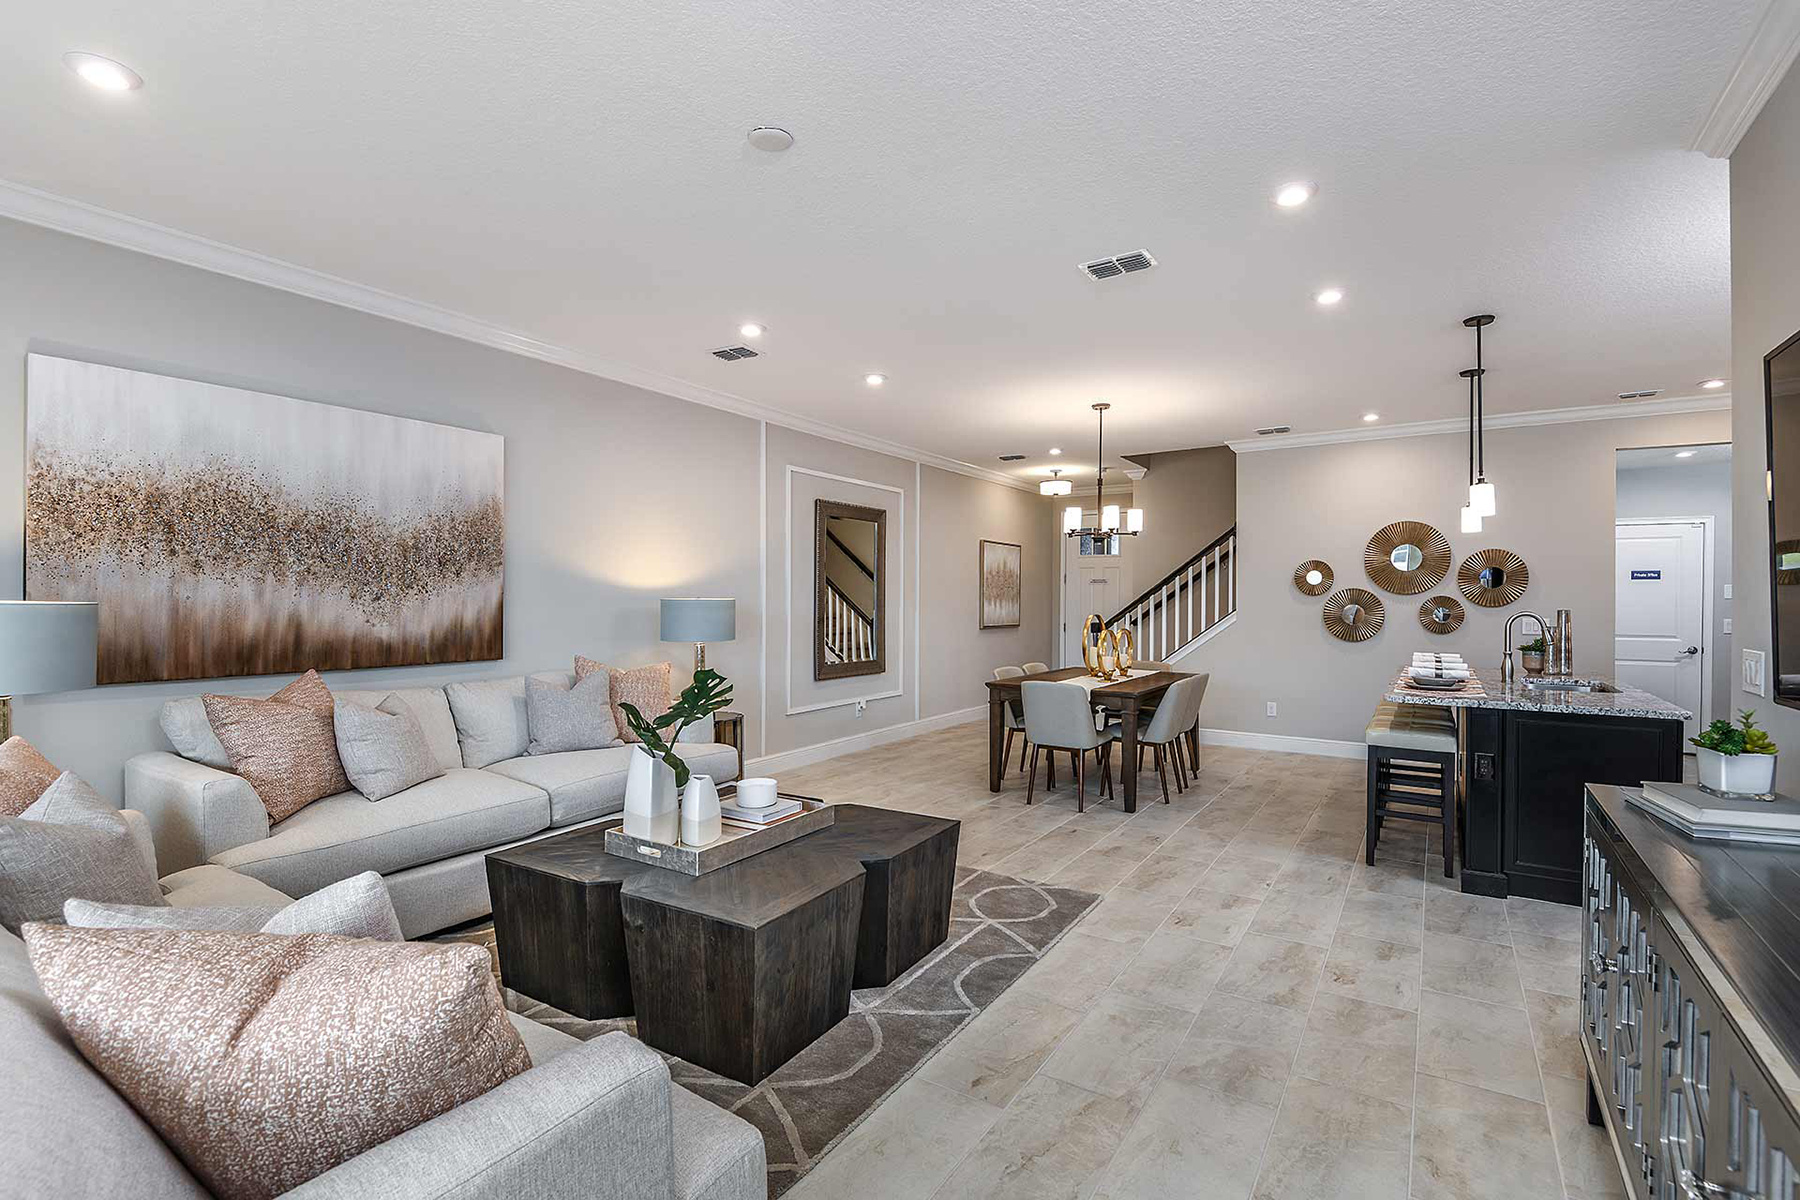 Sebring Plan Greatroom at Avea Pointe in Lutz Florida by Mattamy Homes